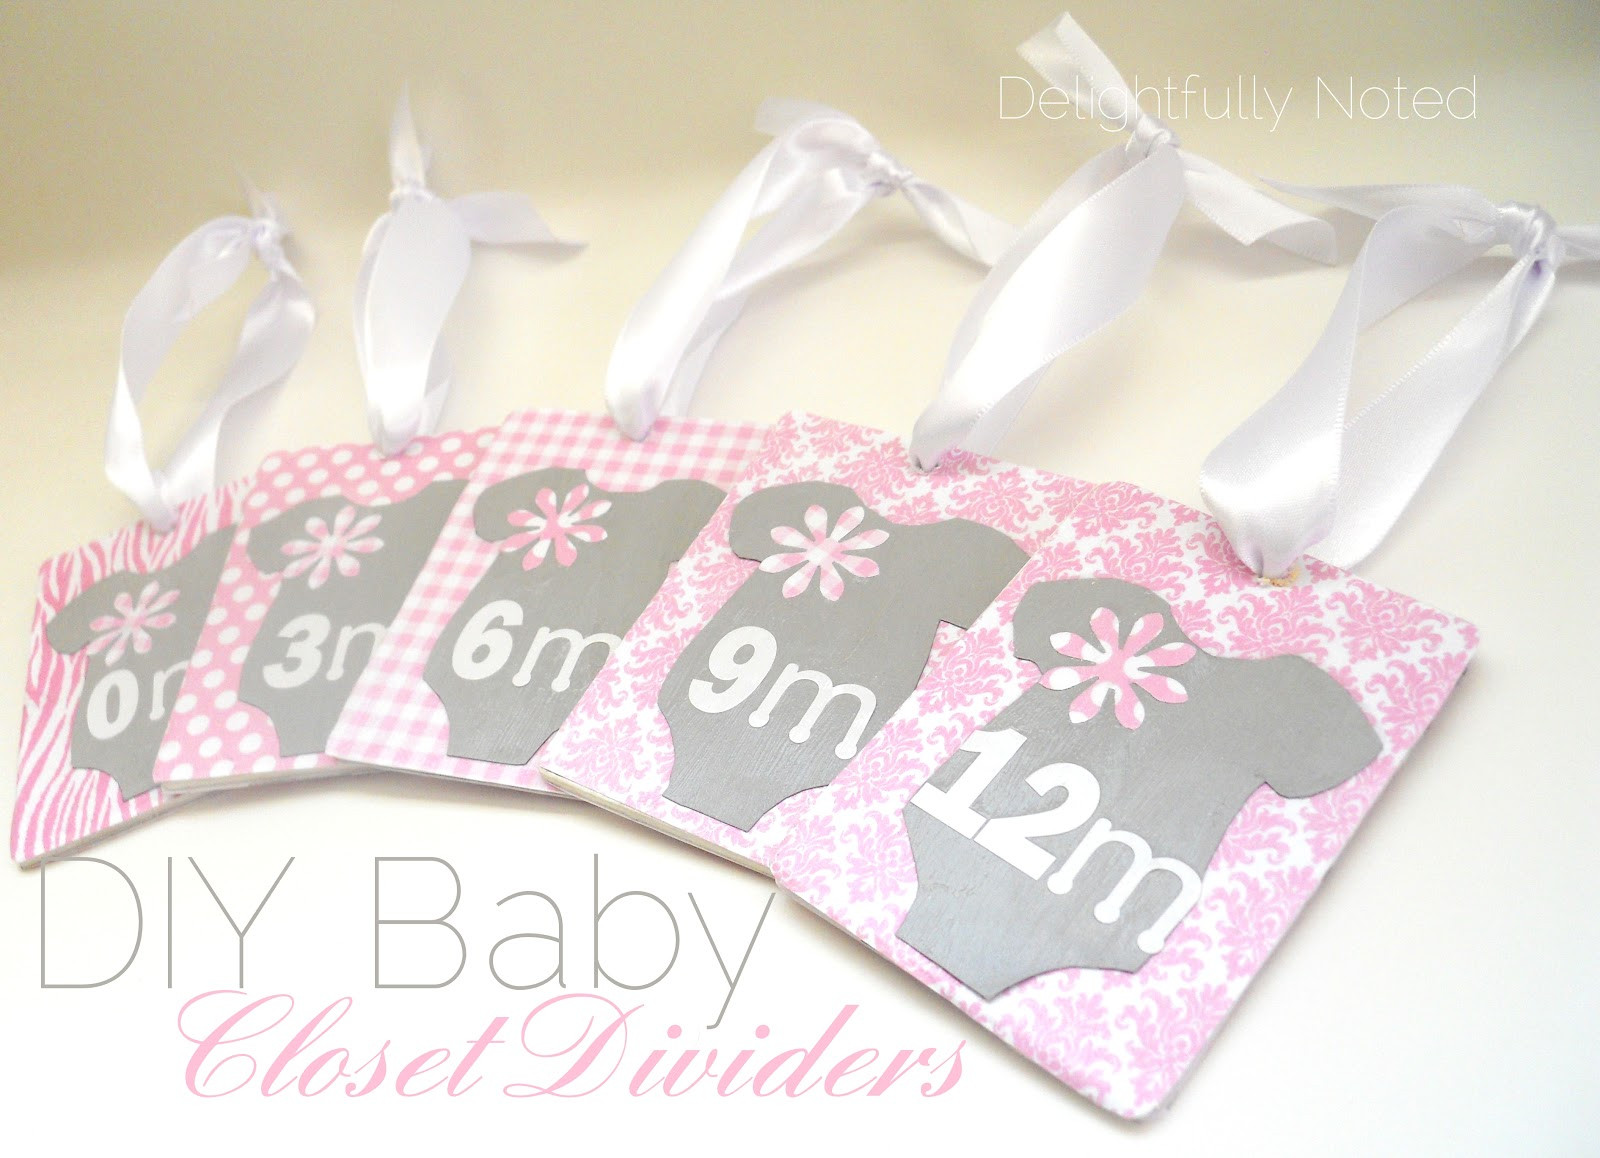 Best ideas about DIY Baby Closet Dividers . Save or Pin Handmade Baby Gifts DIY Baby Closet Dividers Now.